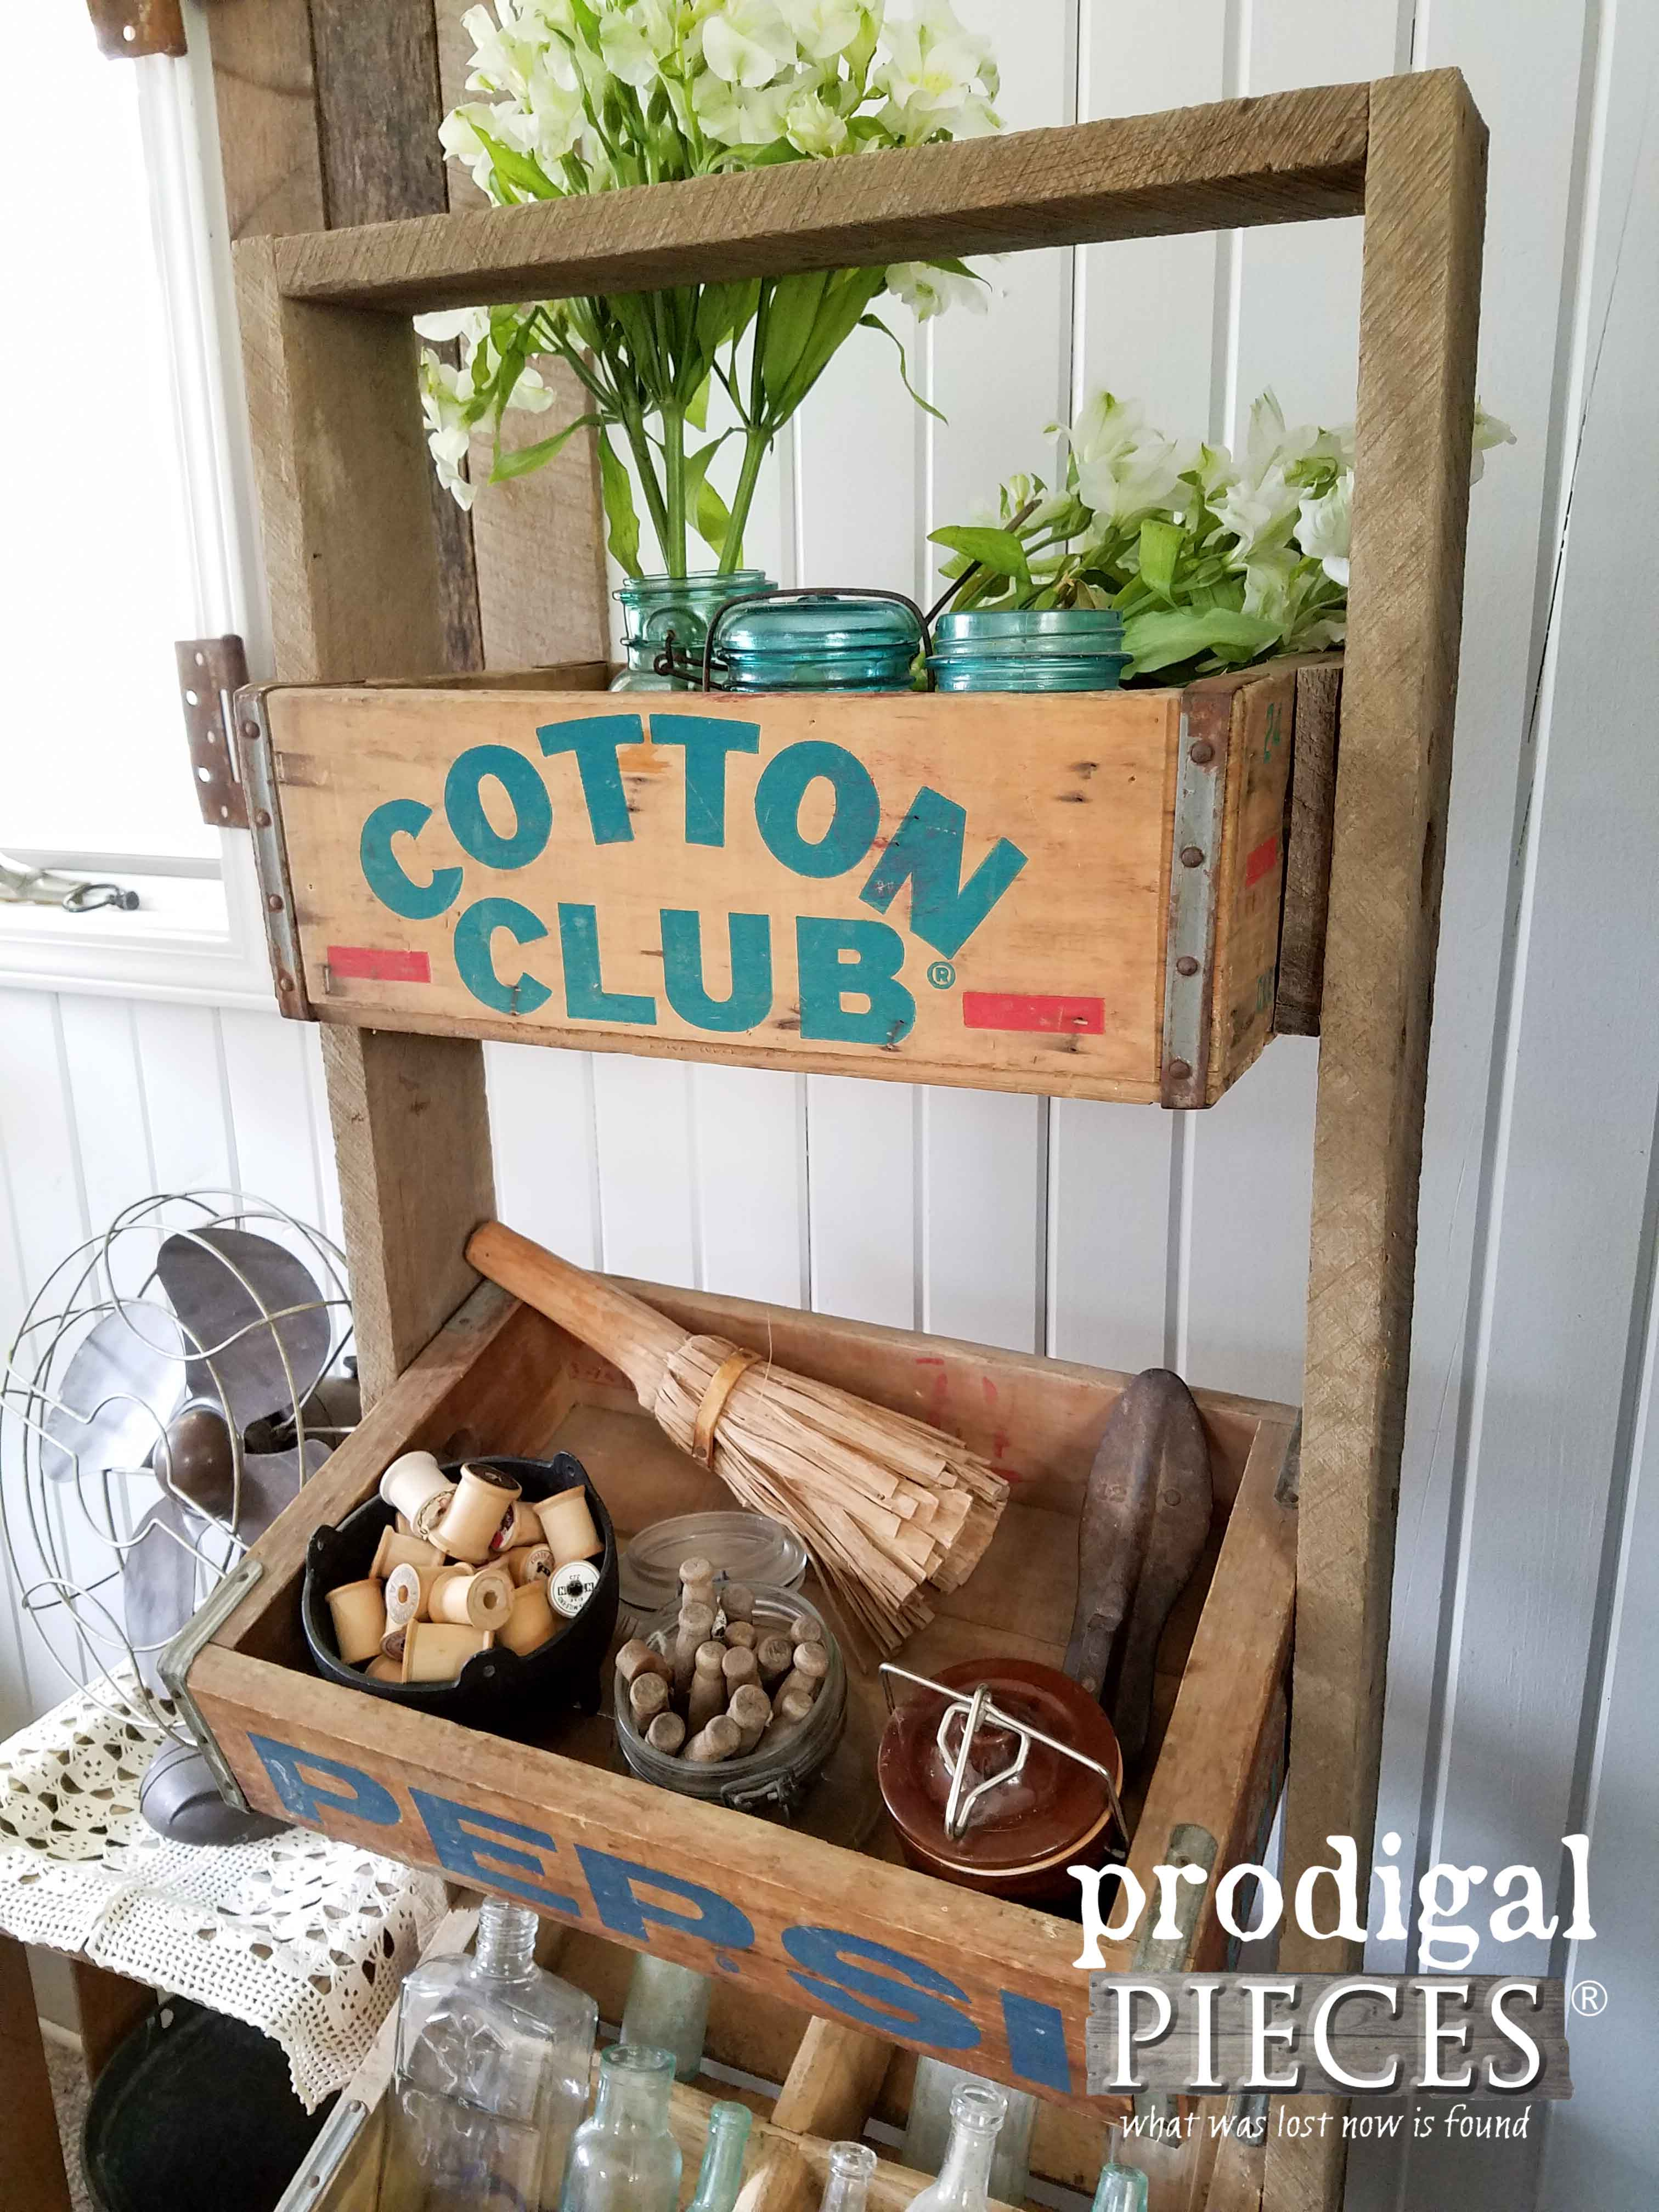 Soda Crates Make for a Rustic Flea Market Style Stand by Prodigal Pieces | www.prodigalpieces.com